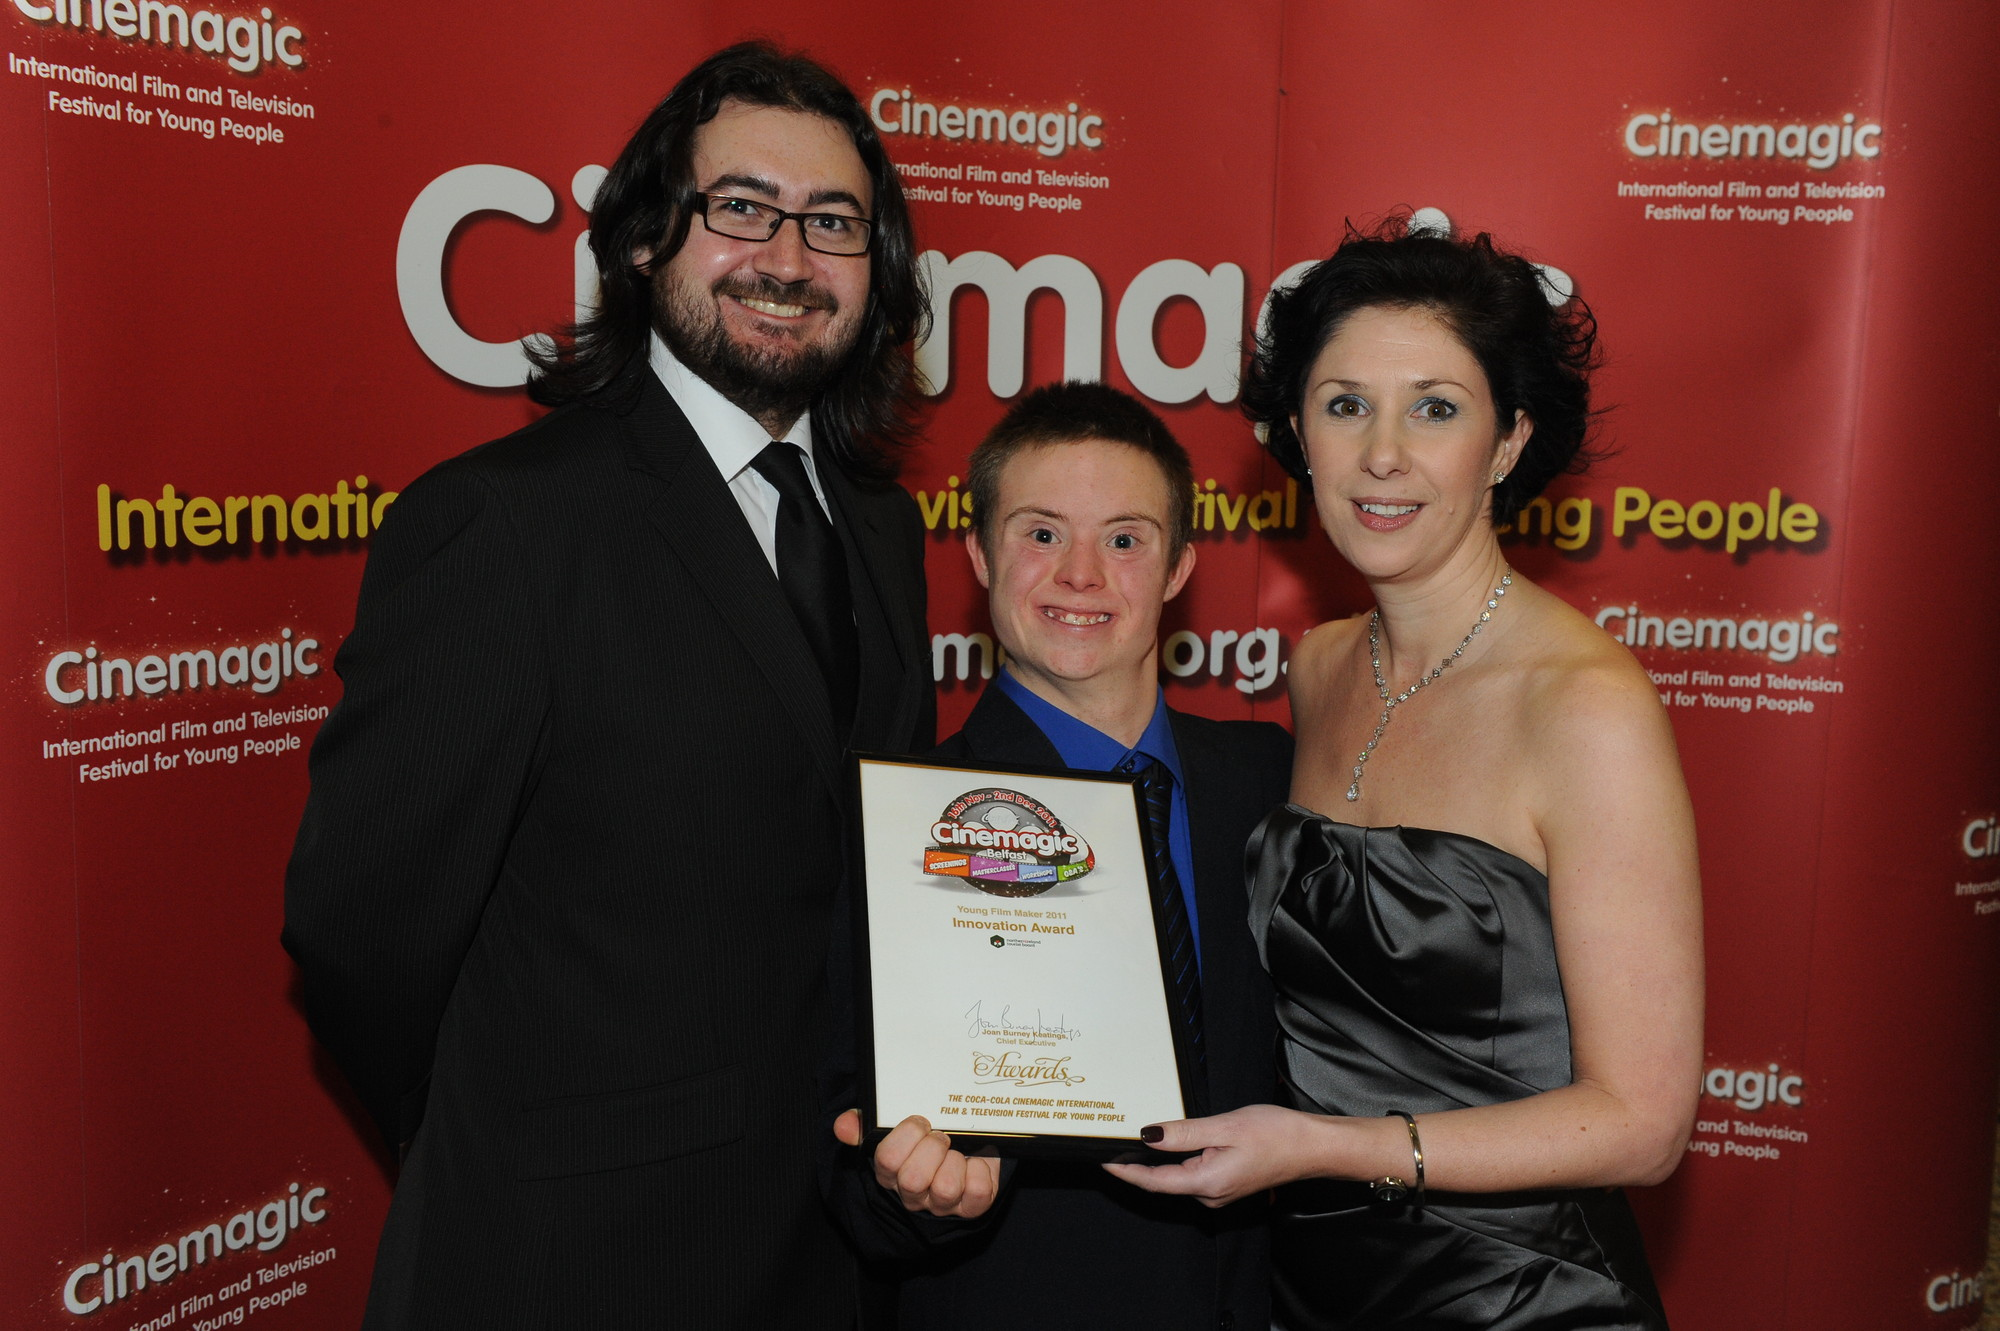 Cinemagic's Sean Boyle, Connor Rathbone and Susie McCullough, NITB who presented Connor with the Cinemagic Young Filmmaker Award for Best Film Innovation.jpg